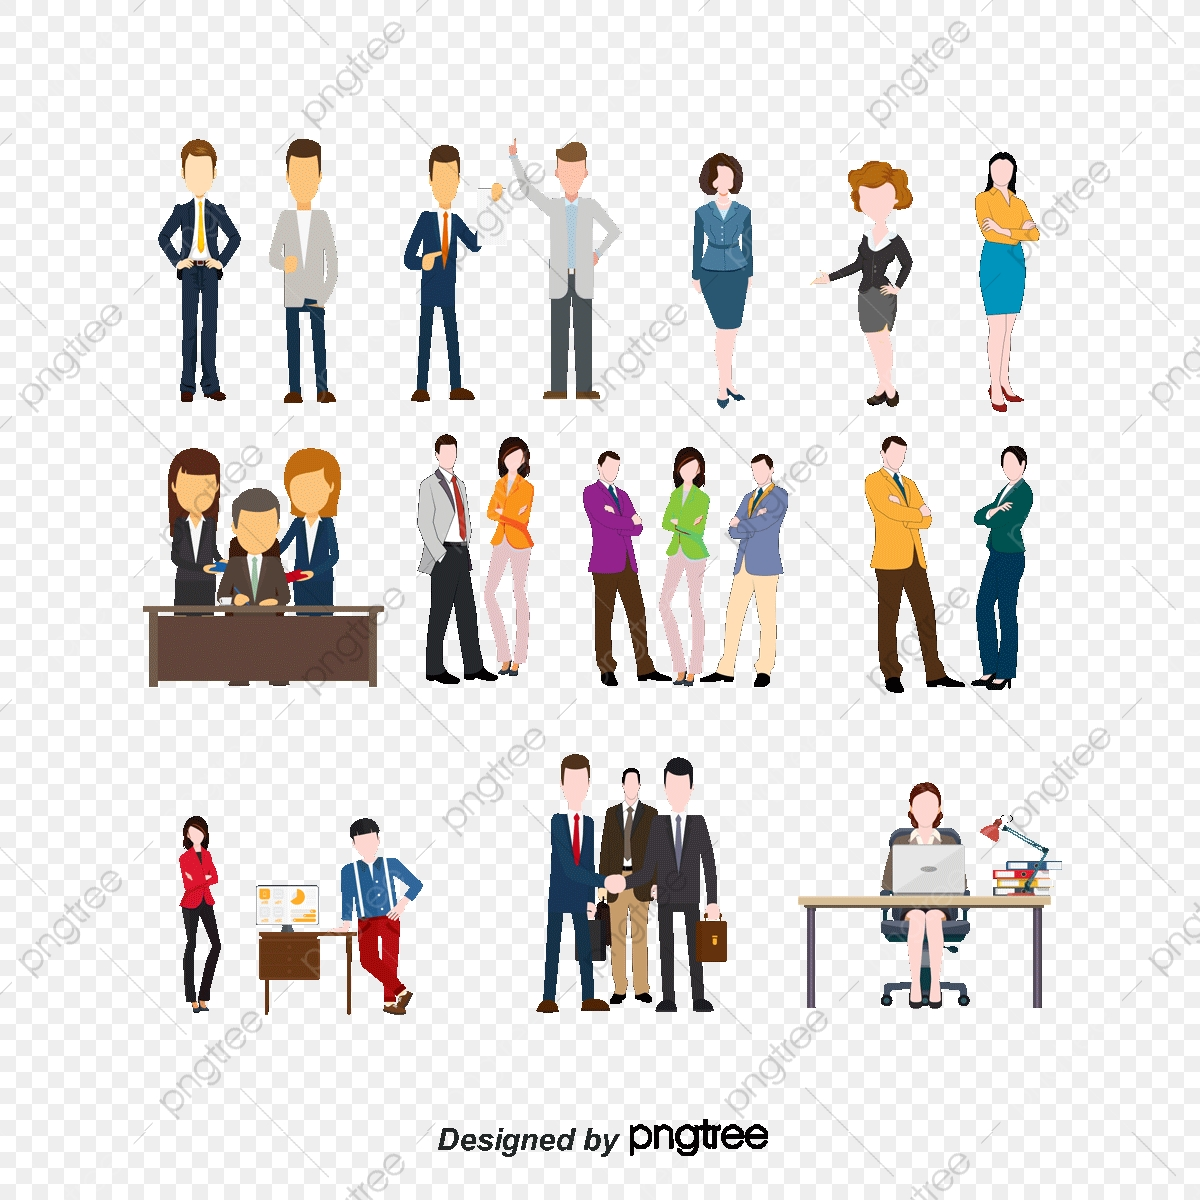 Vector Business People Collection, Business Vector, People Vector.